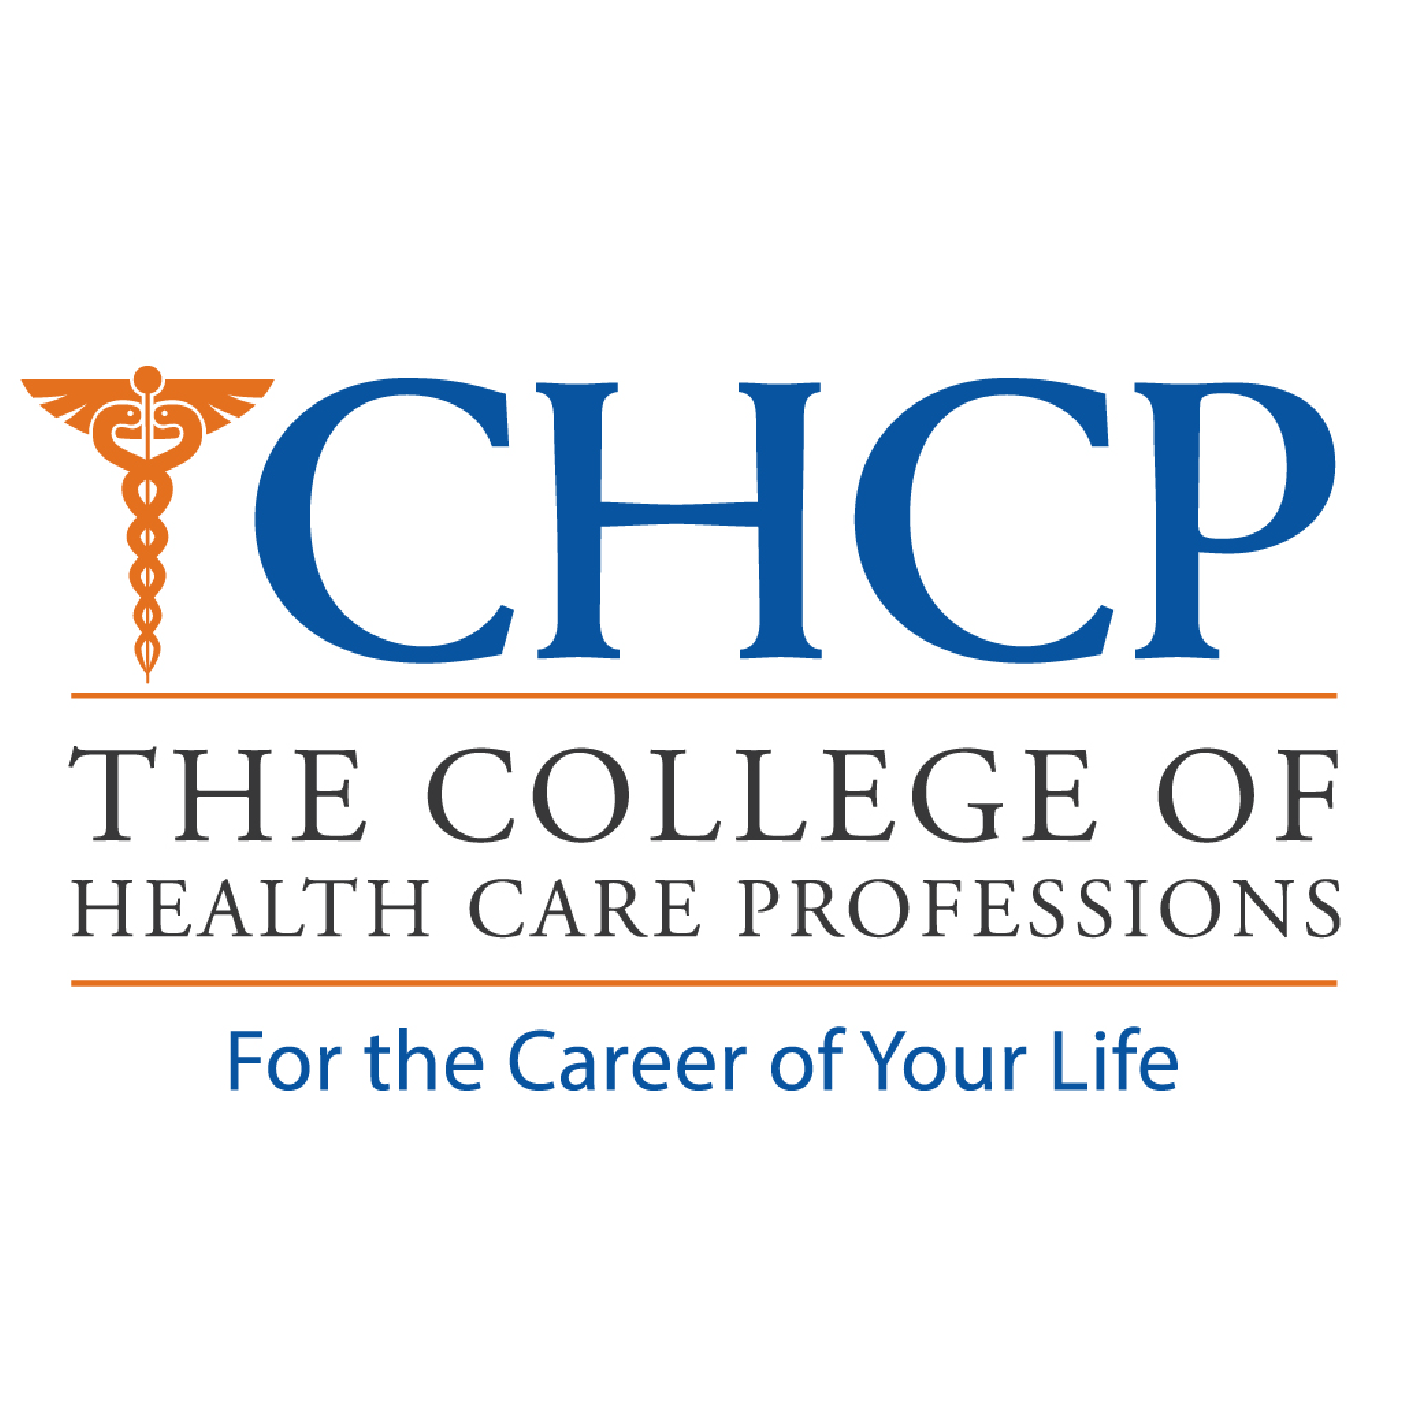 Coorect CHCP logo@3x.png